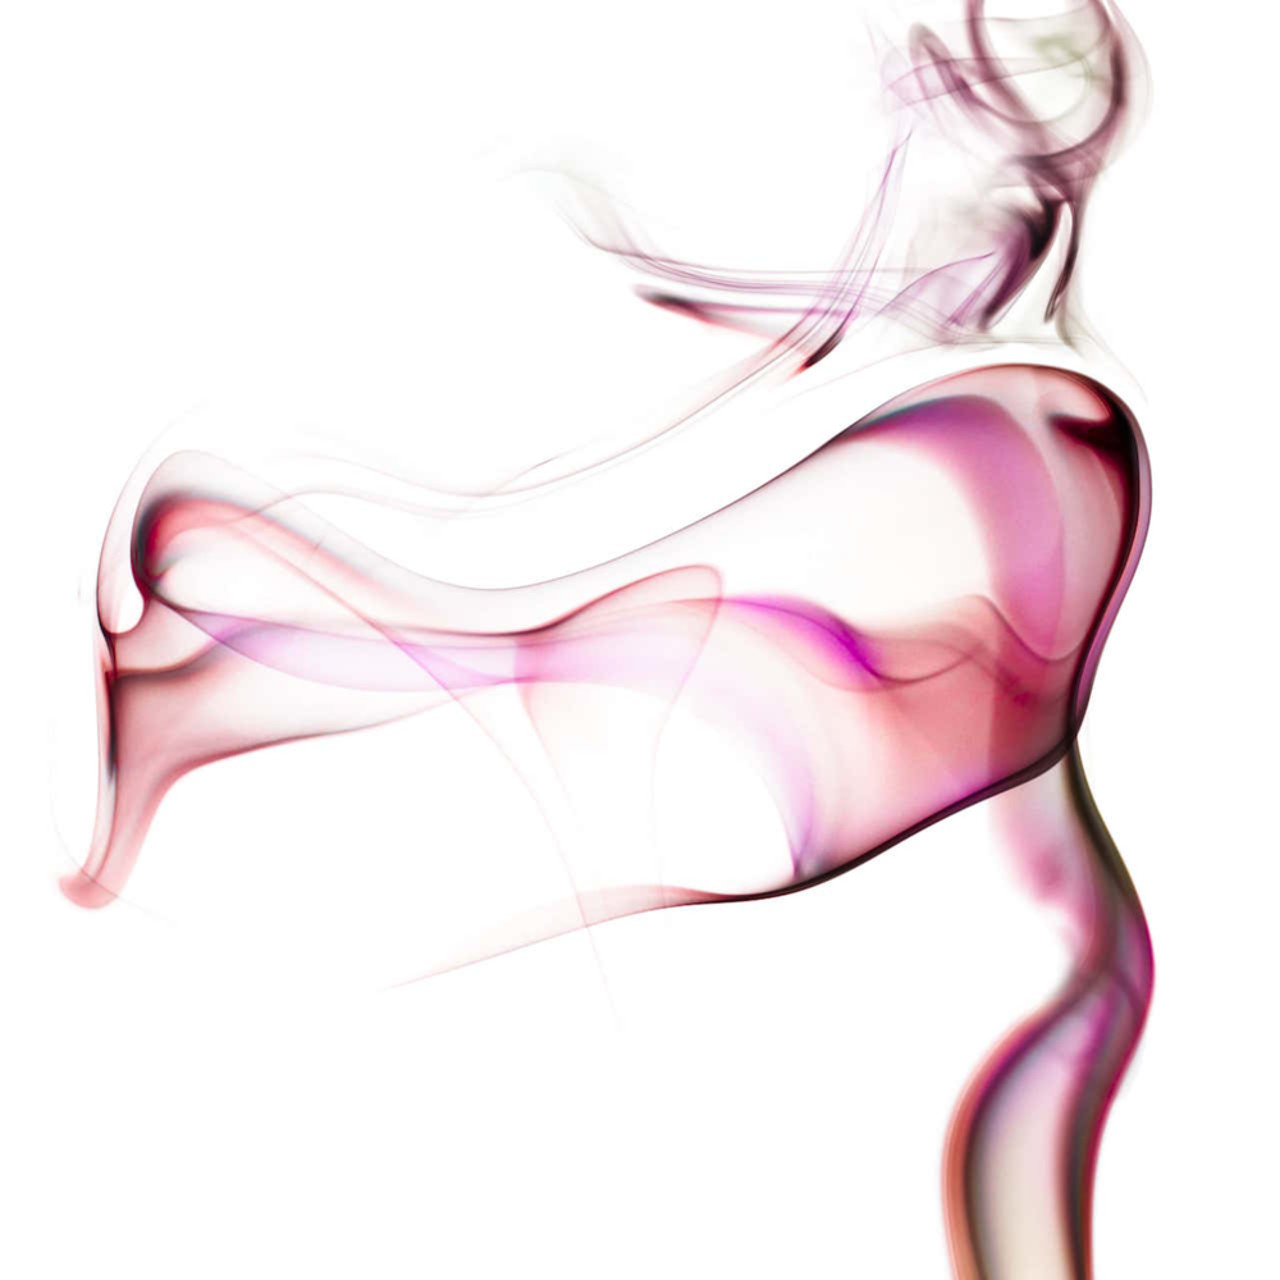 The dancer studio shoot   smoke feine form abstract art doug hall mtimuw